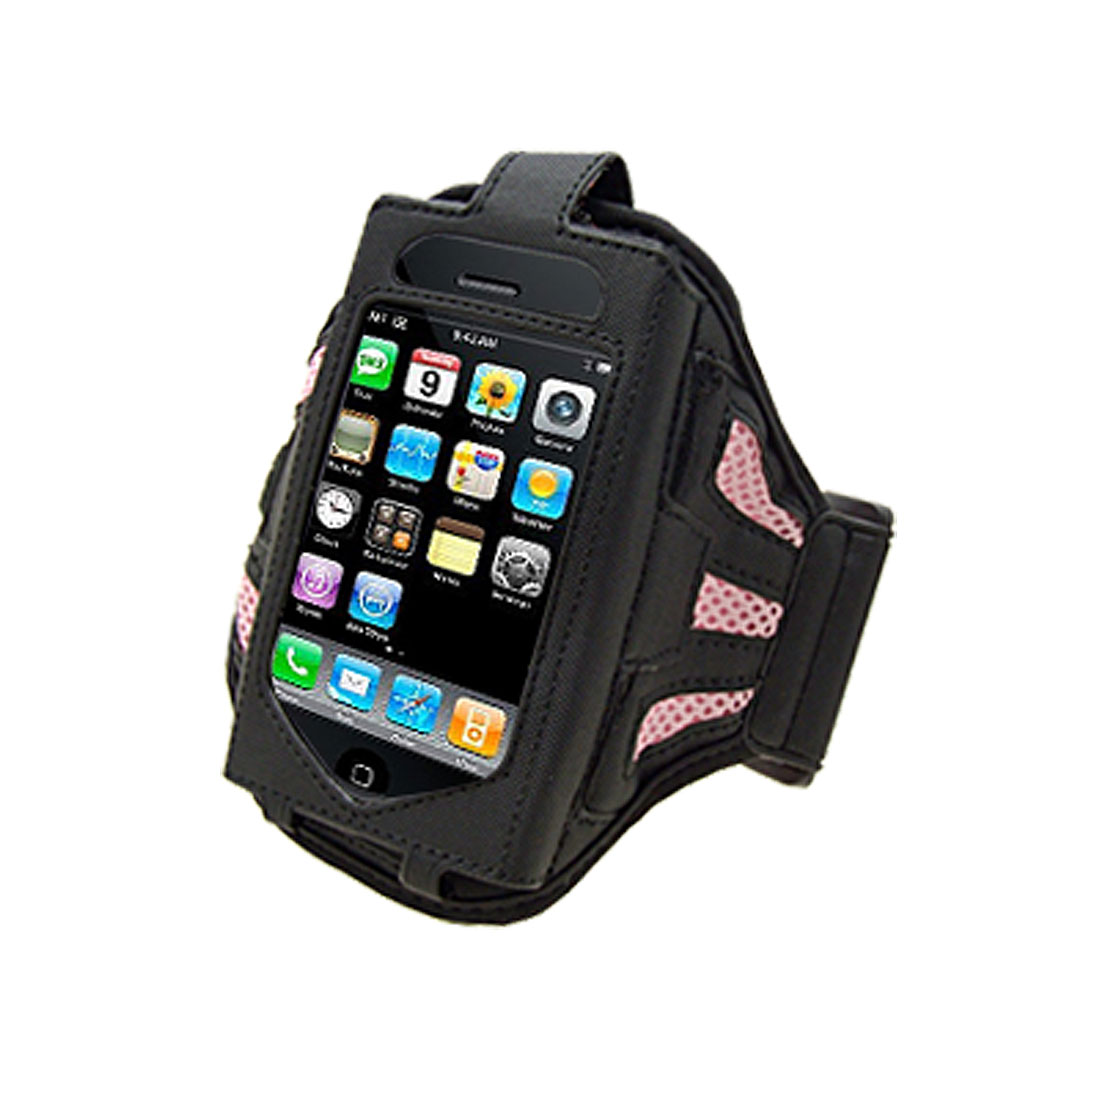 Sports Armband Case Holder for Apple iPhone 3G Pink